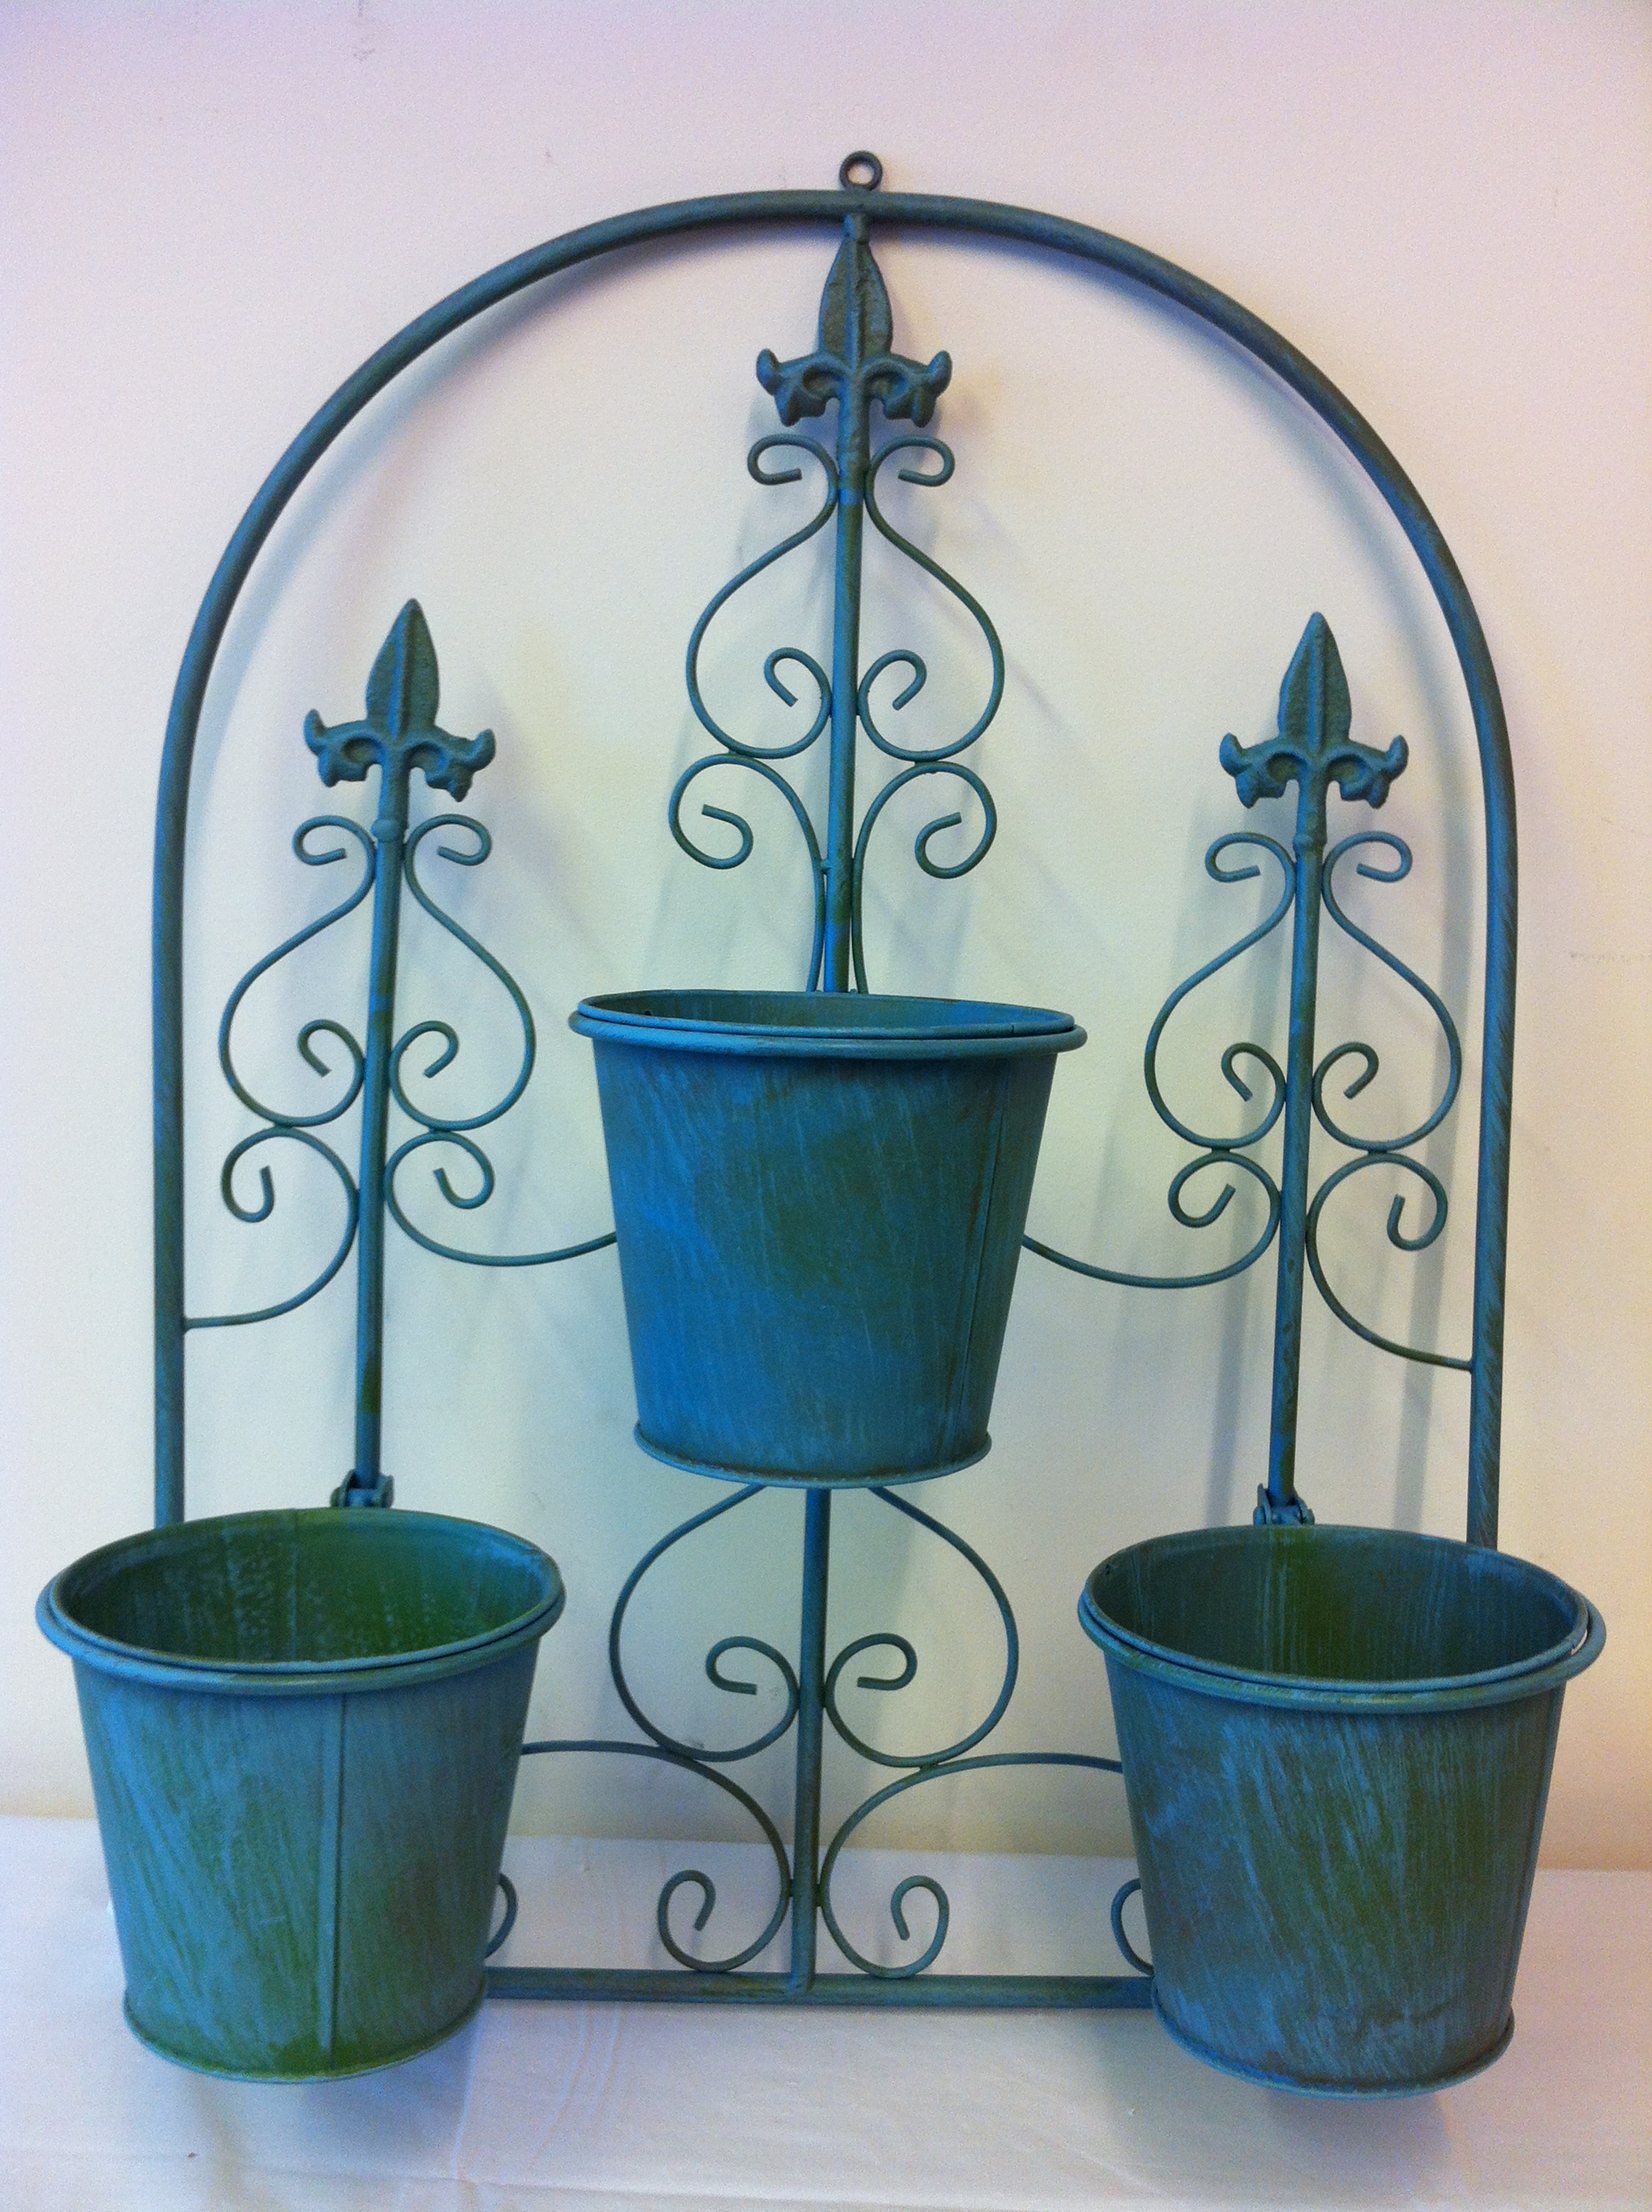 Wall Mounted Pots 3 Pot Arch Planter Wall Hanging Garden Ornament Includes